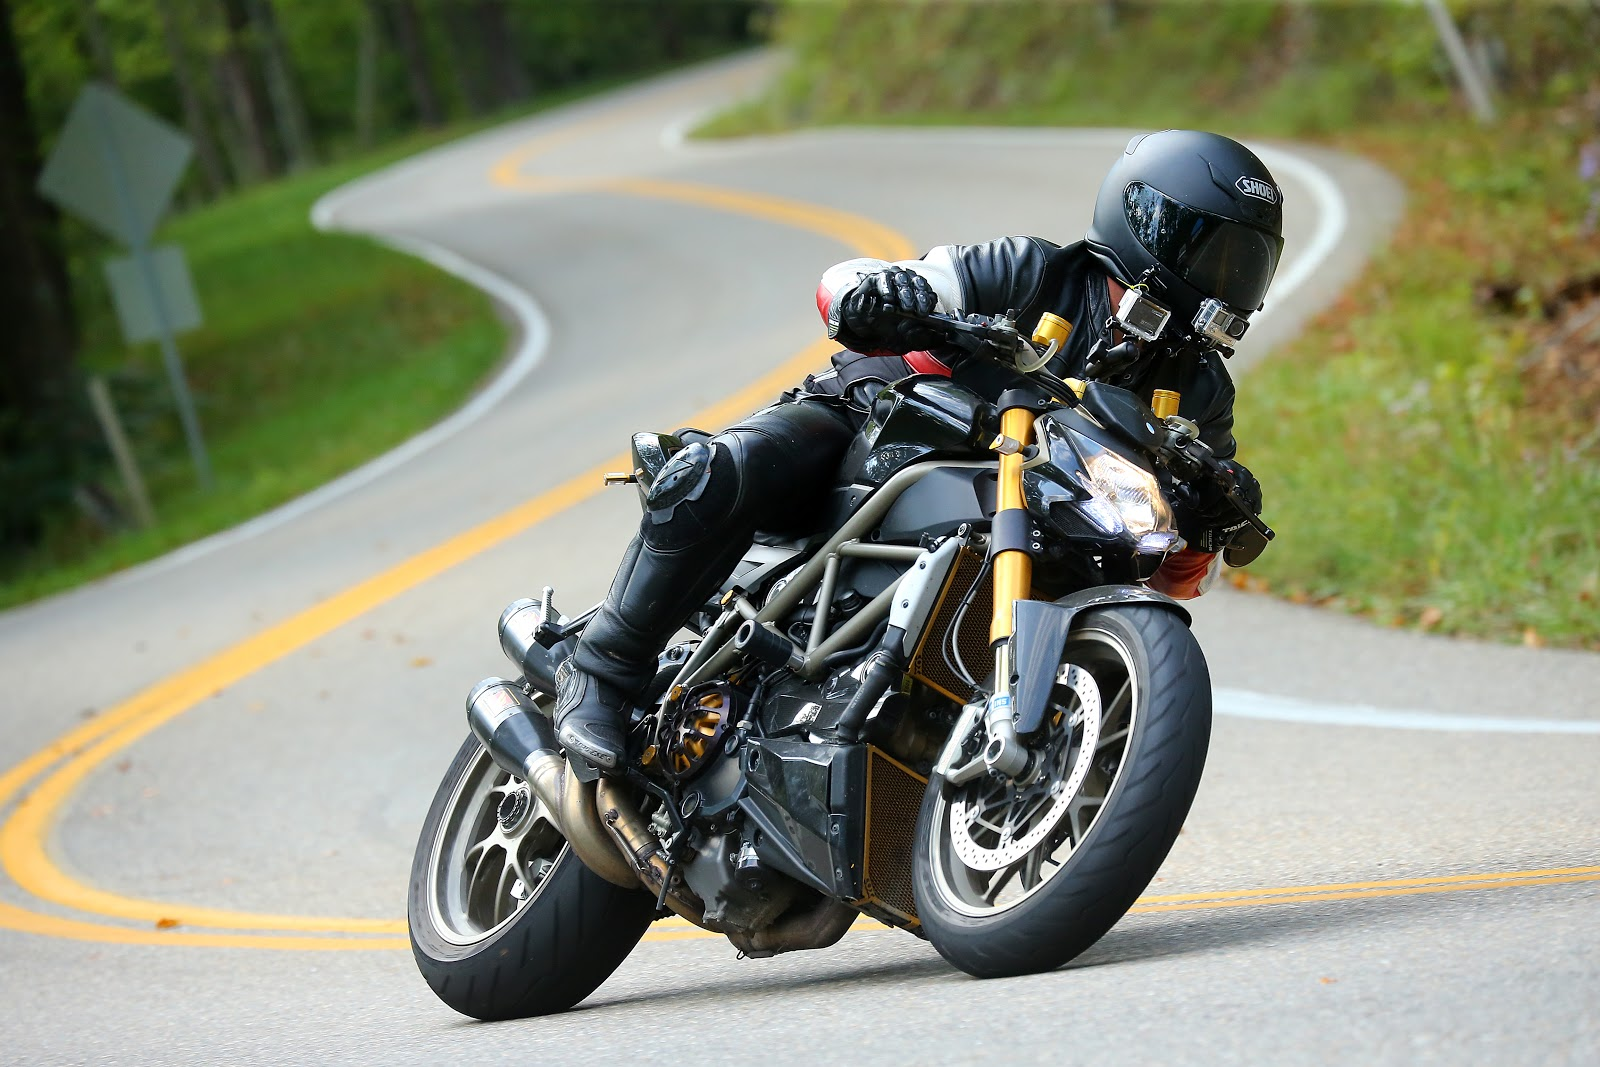 Tigh Loughhead rides the Tail of the Dragon North Carolina on his Ducati Motorcycle